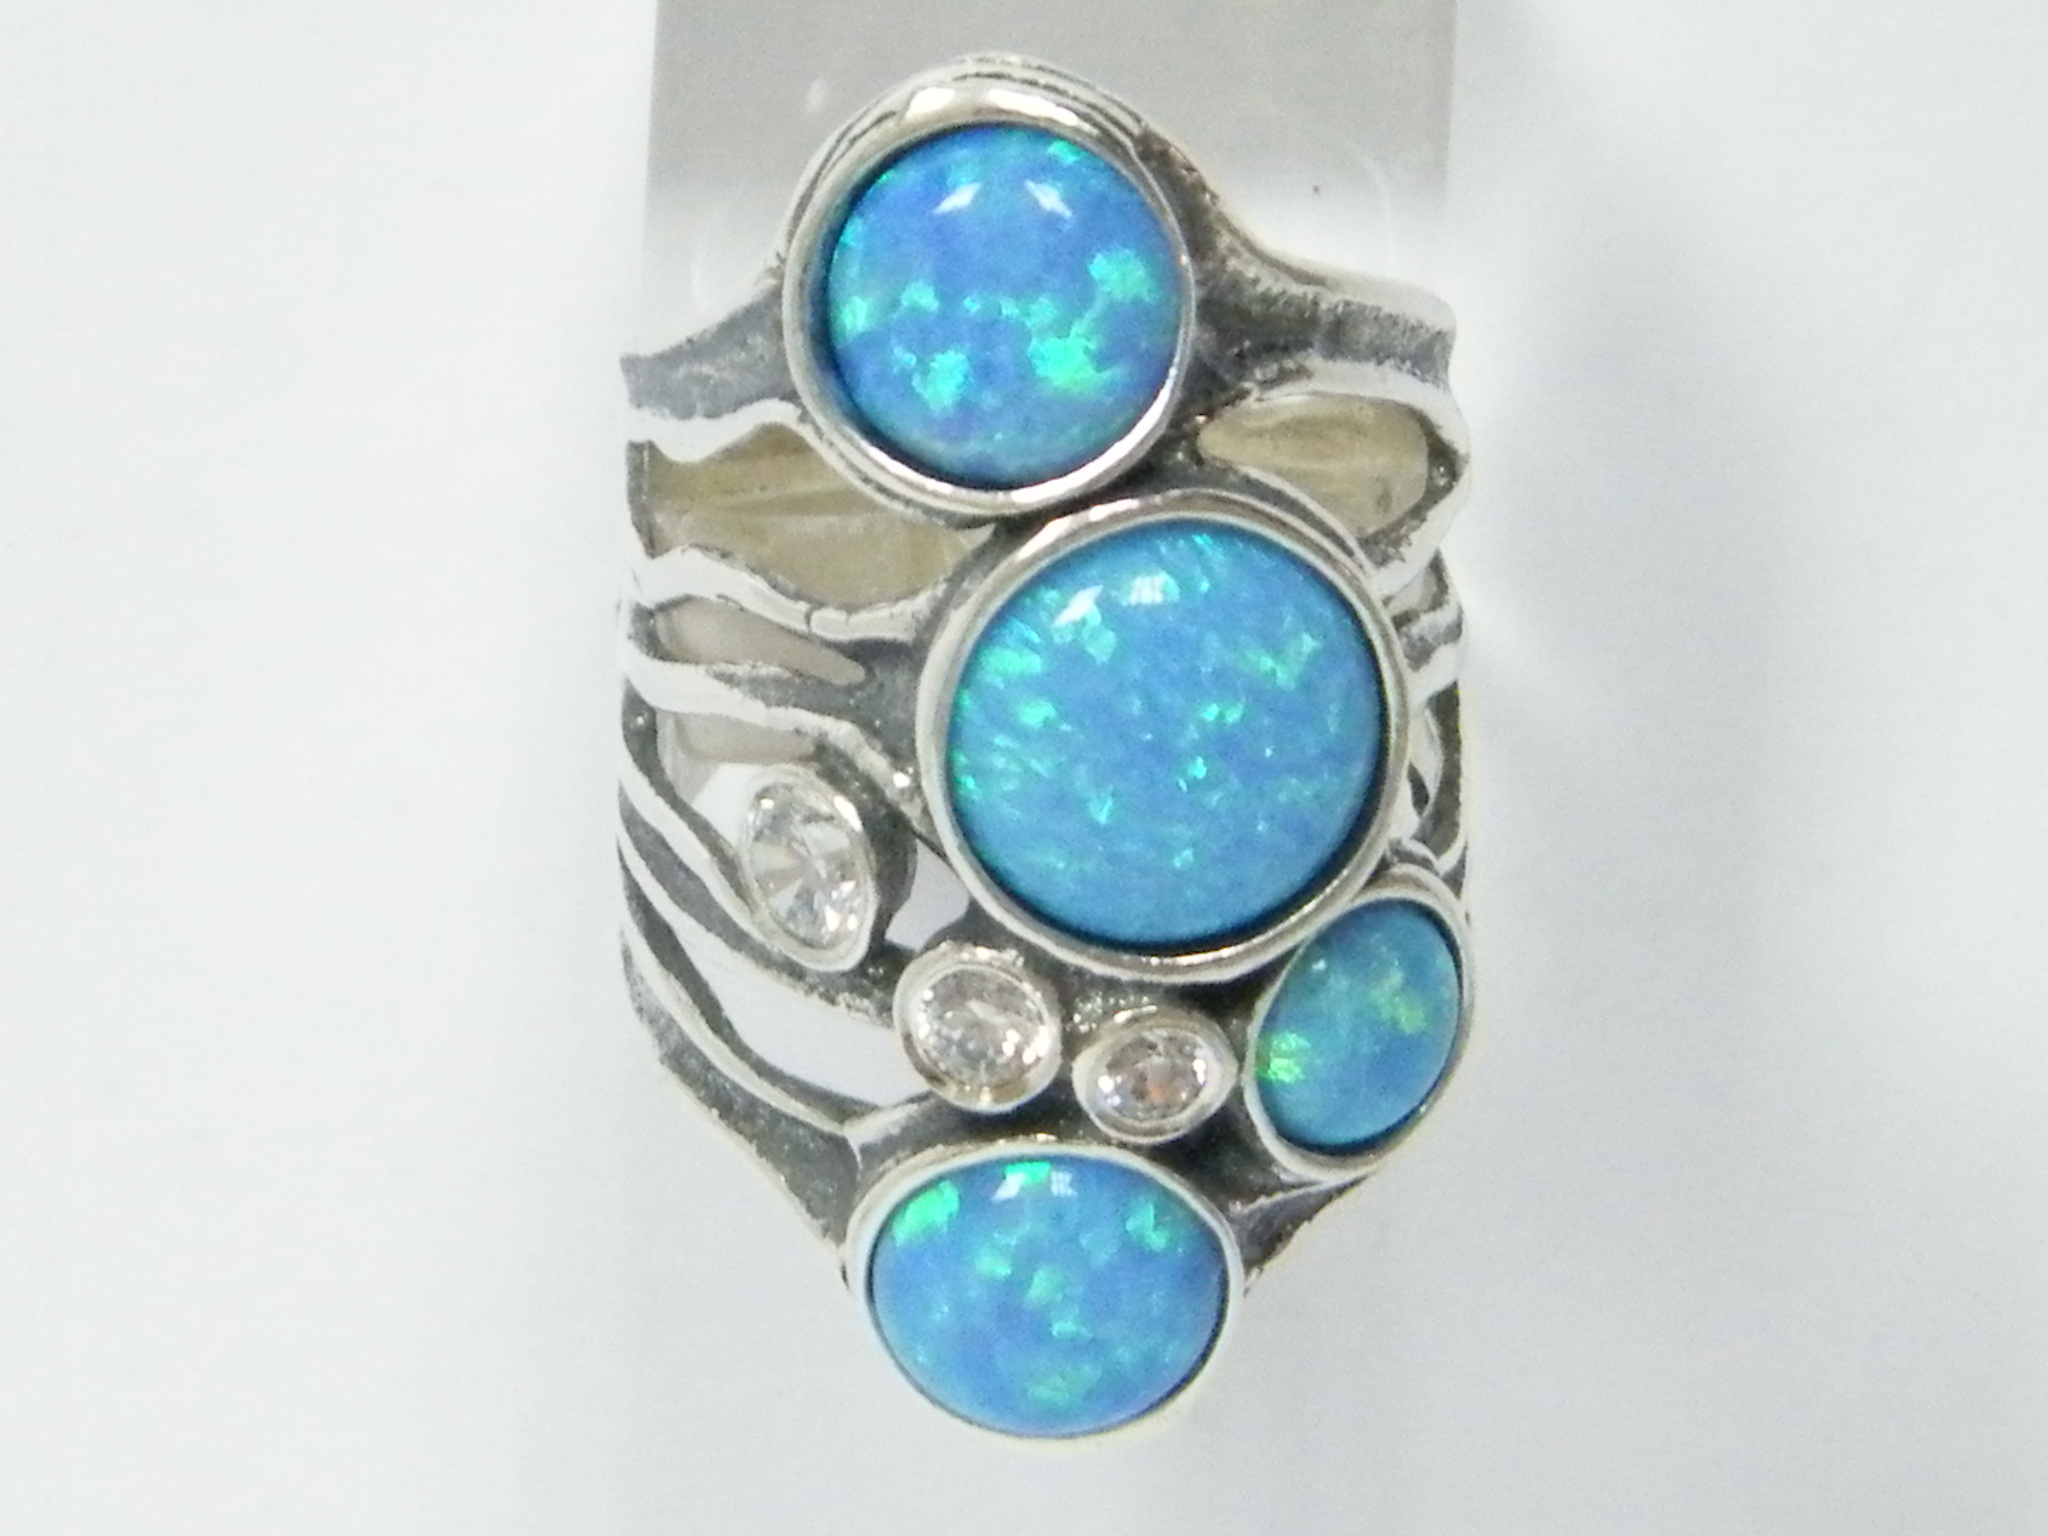 big 925 sterling silver unique 7 stones ring 6 6 mm blue